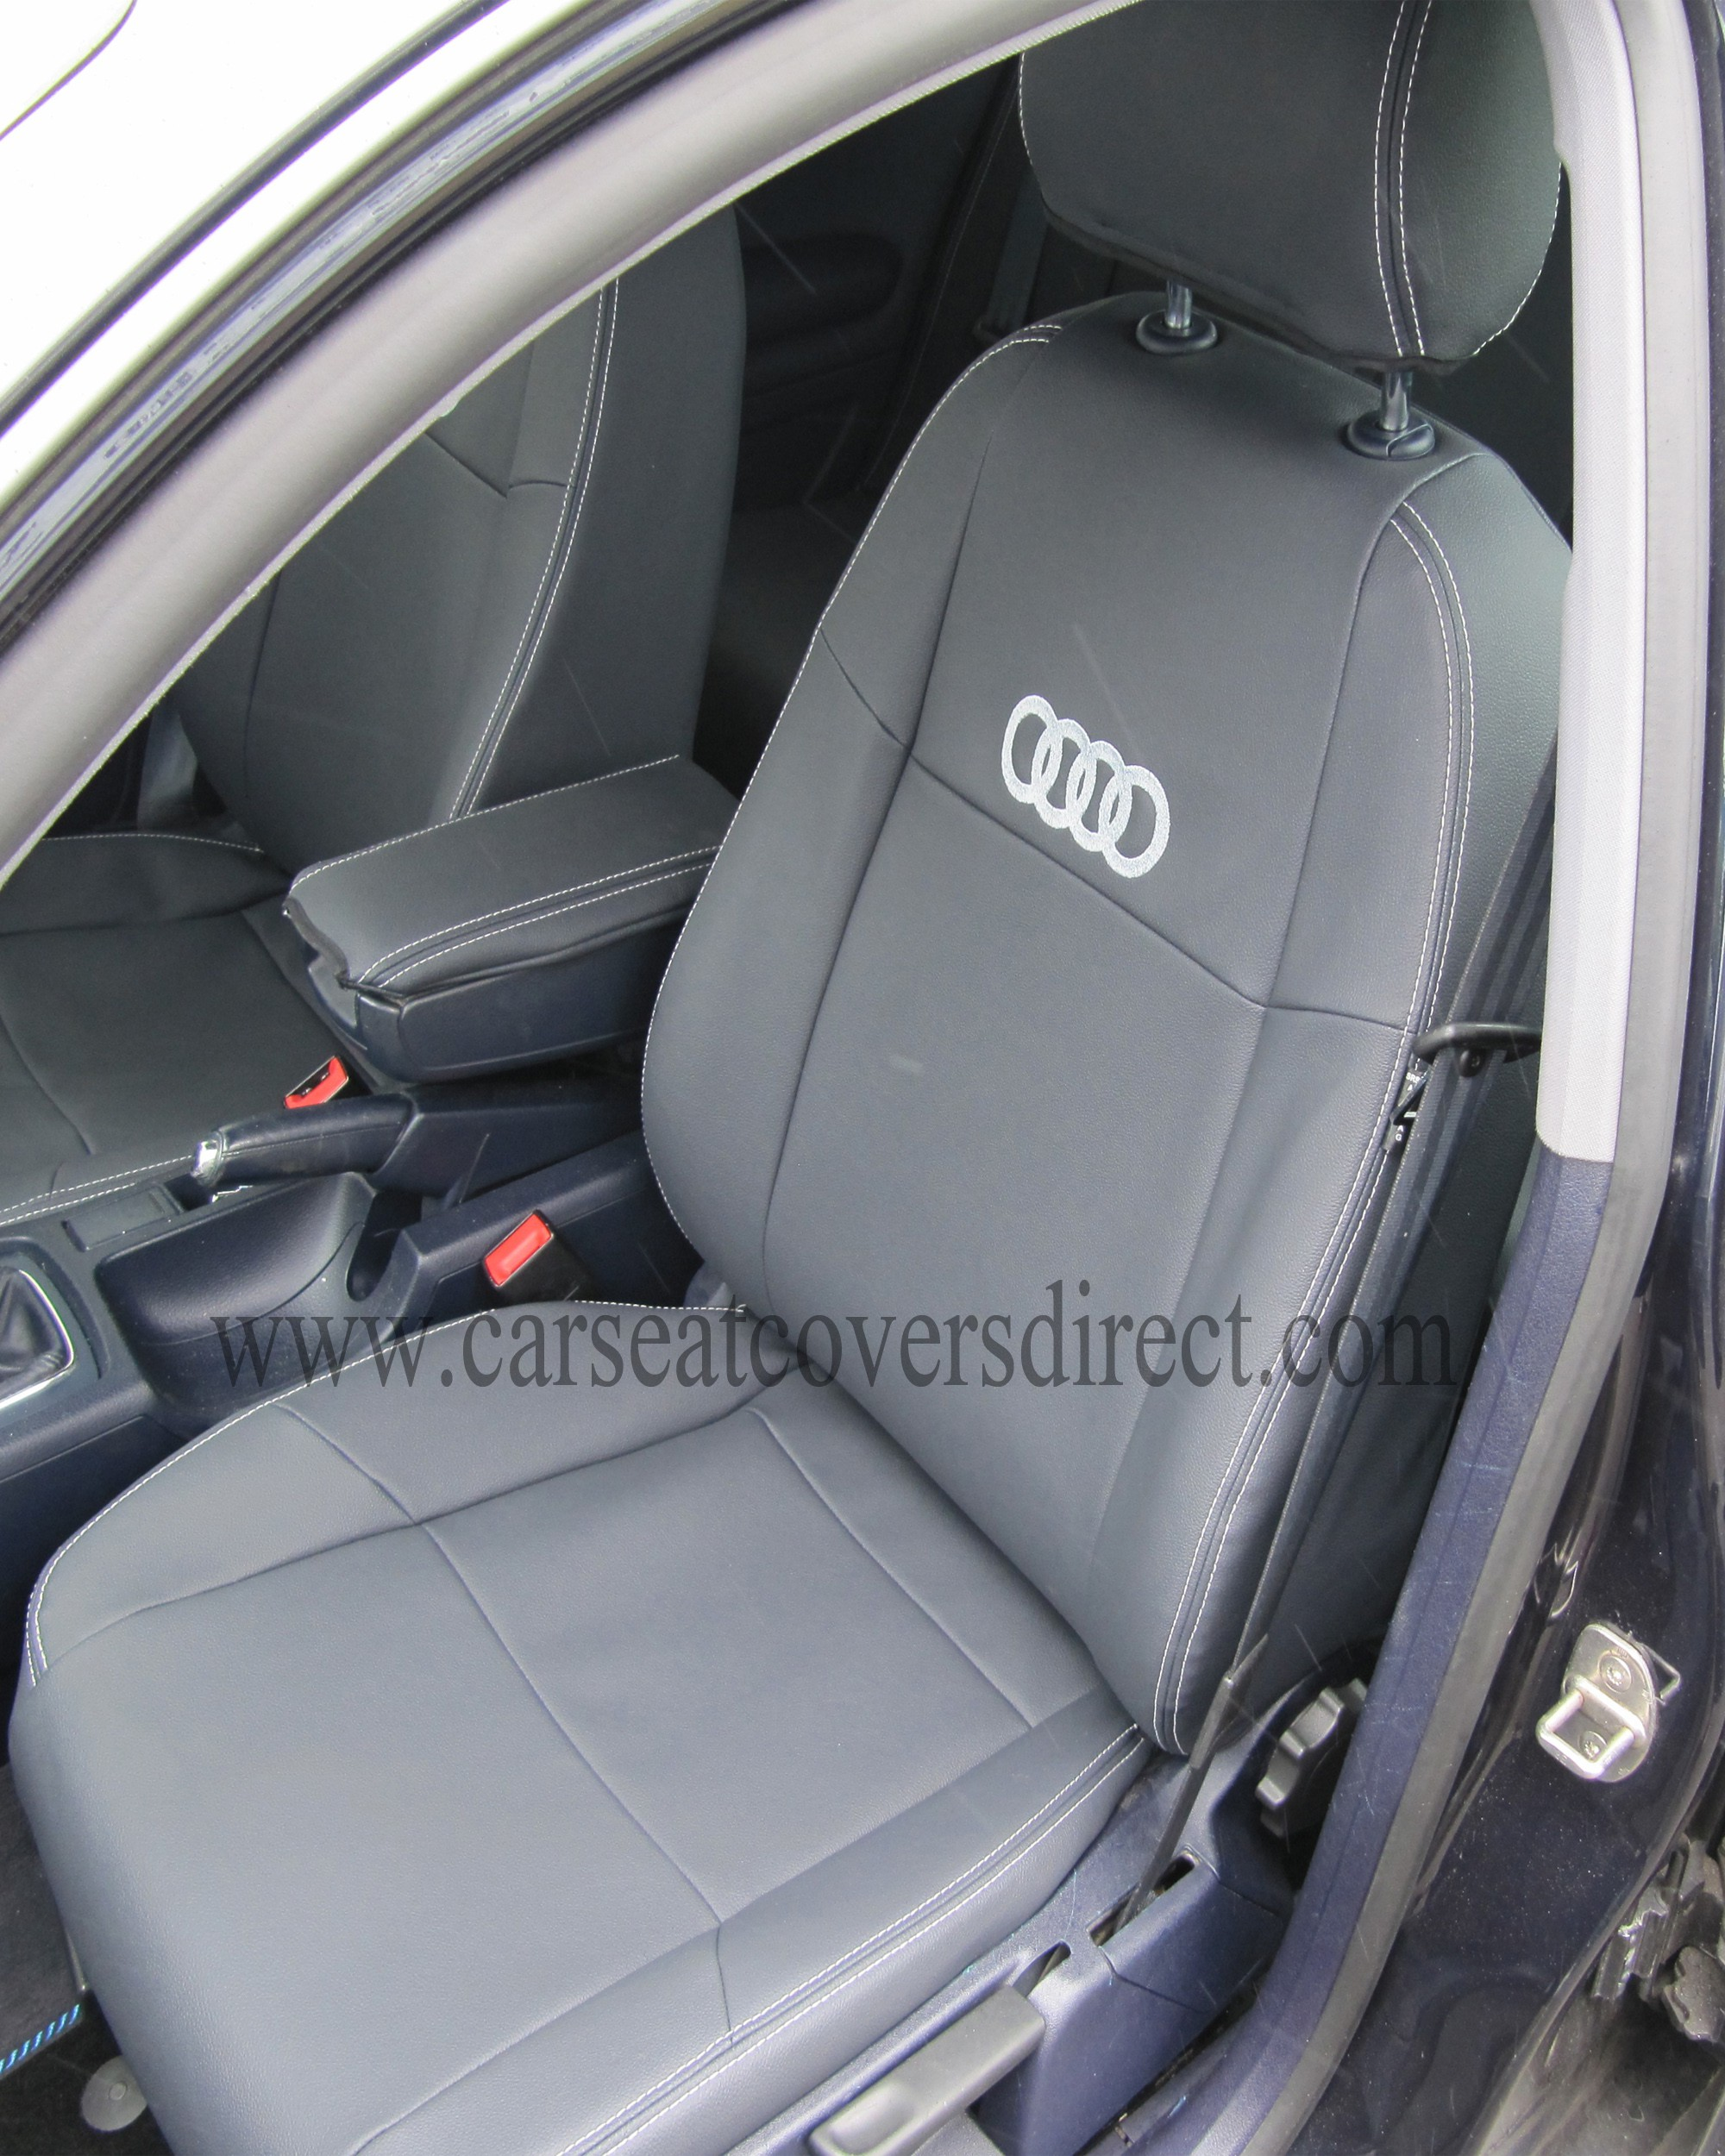 Search Results For Audi Car Seat Covers Direct Tailored To Your